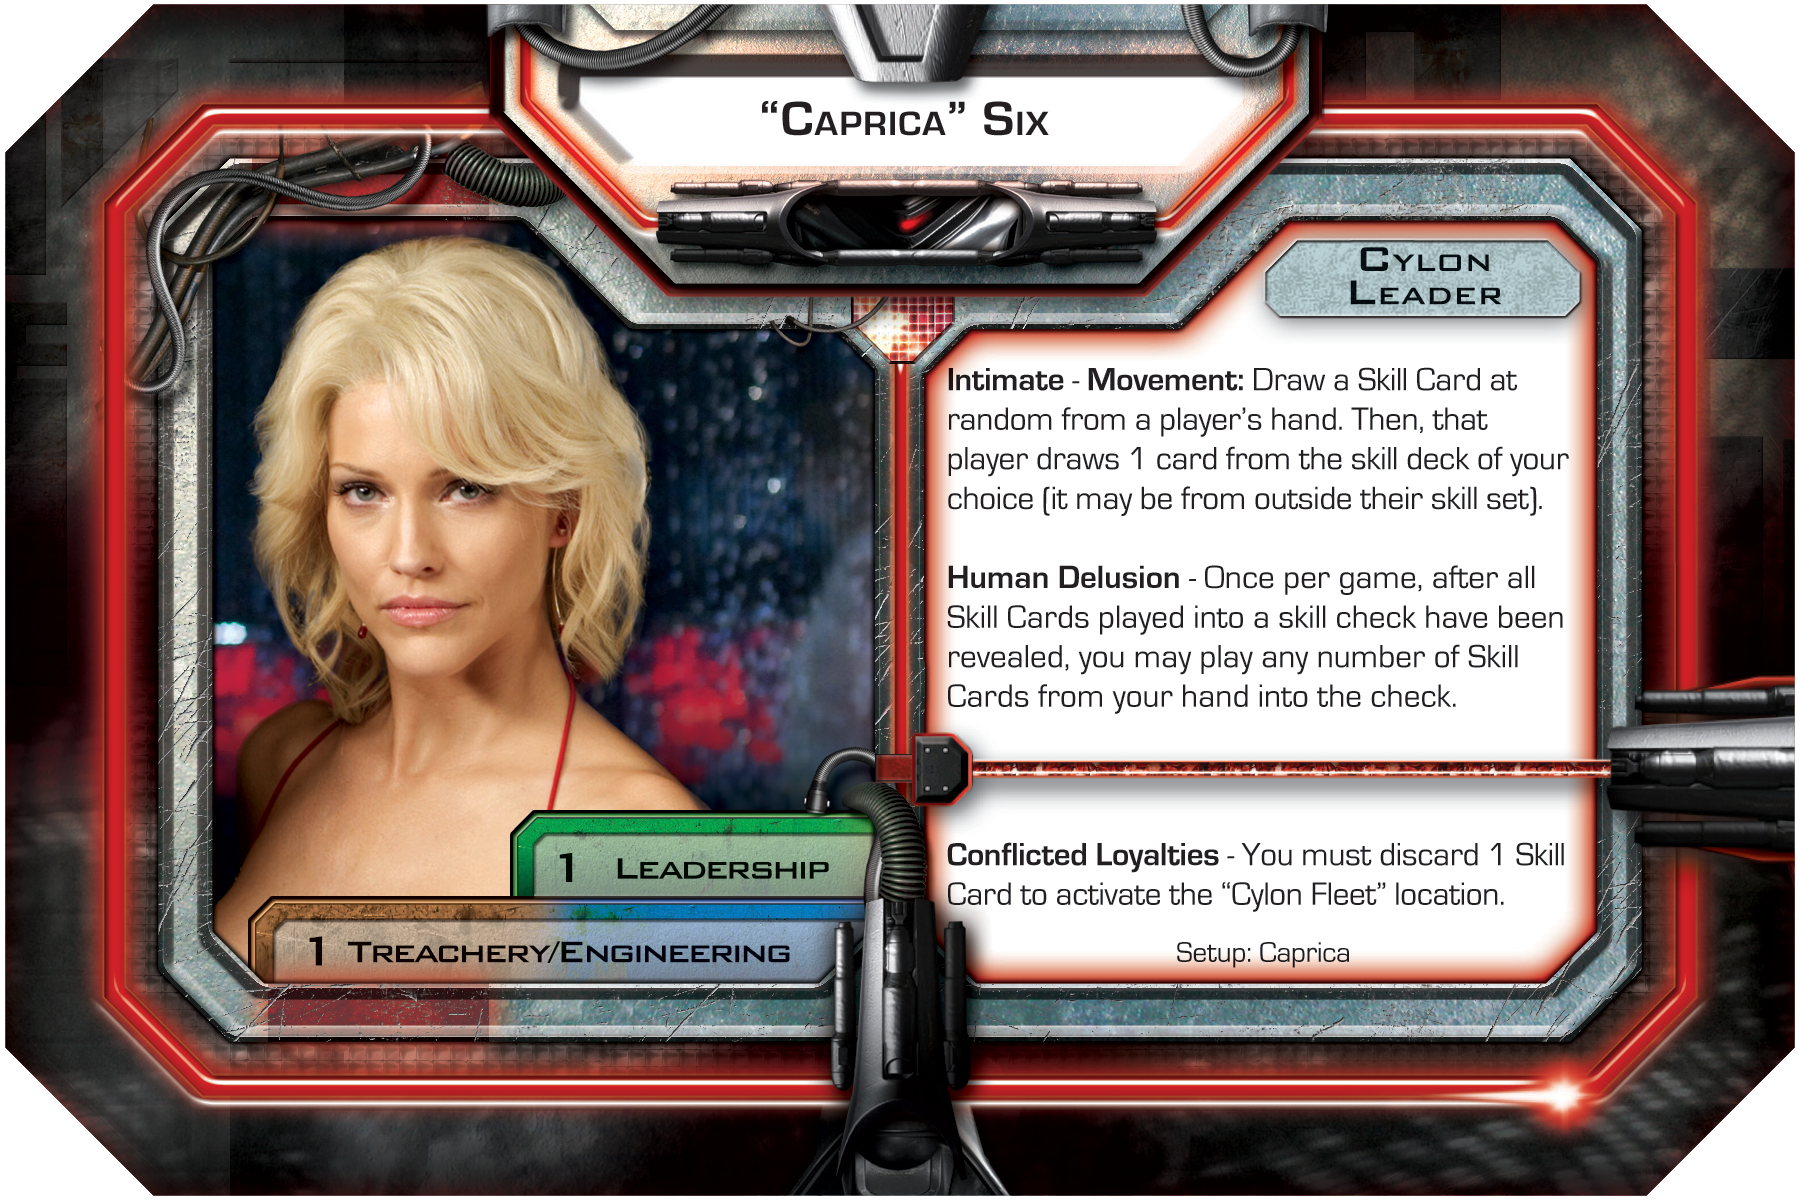 Cylon leader pic